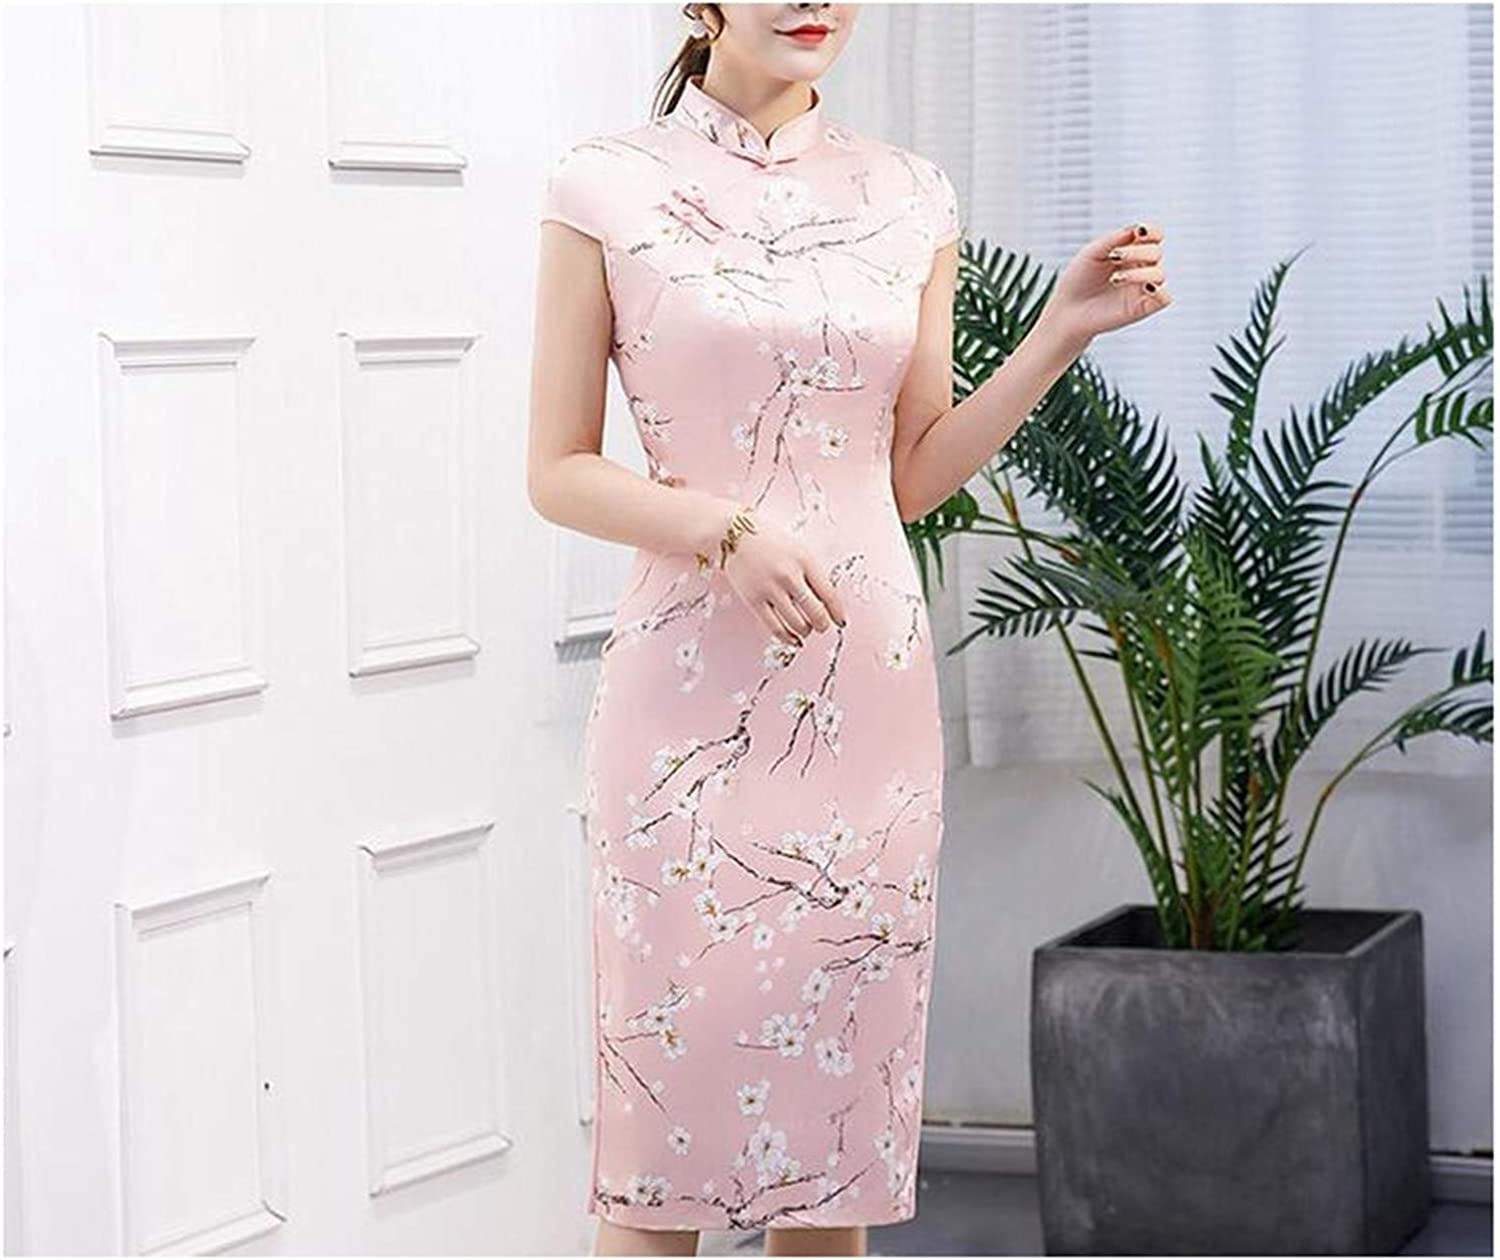 Print Flower Cheongsam Elegant Women Handmade Button Dress Short Sleeve Knee Length Sexy Short Dress